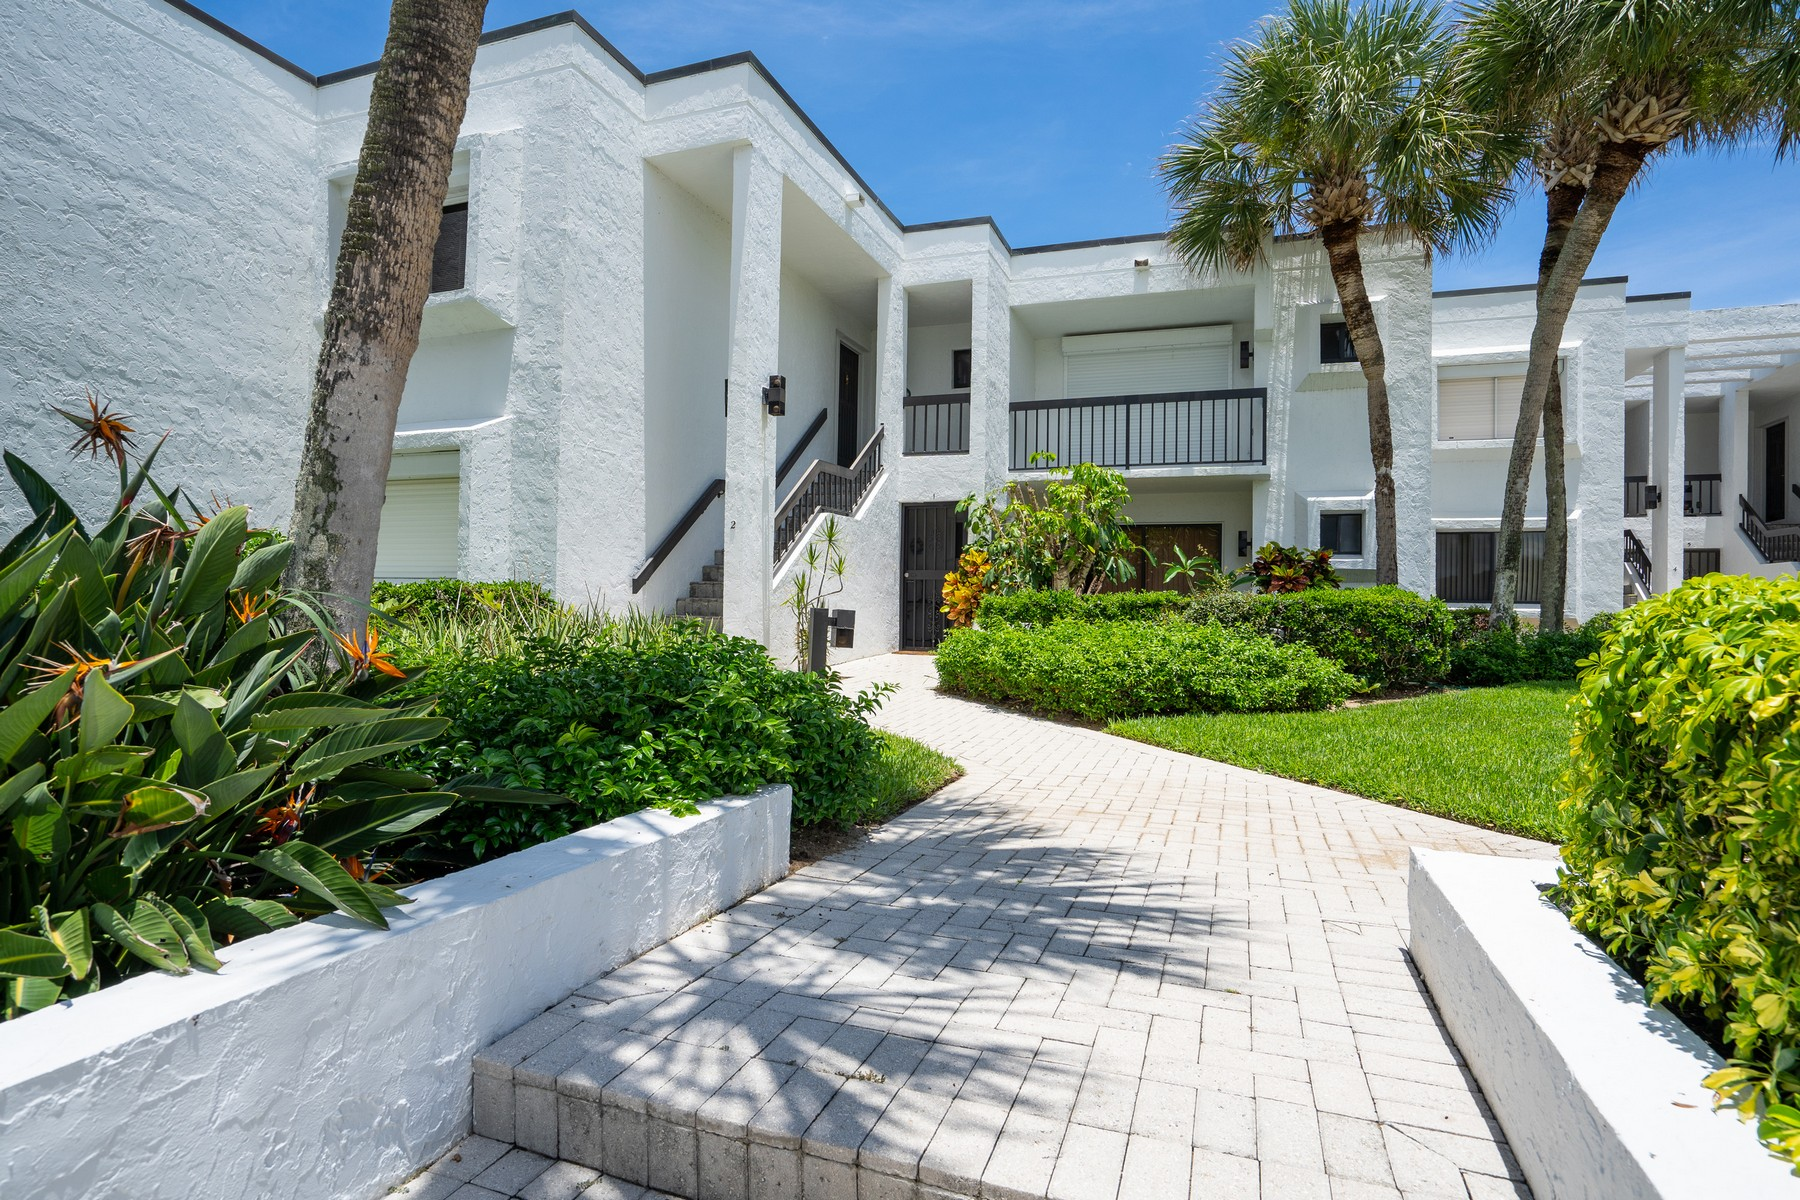 Property para Venda às Oceanfront First Floor Condo 5790 Highway A1A #1A Indian River Shores, Florida 32963 Estados Unidos